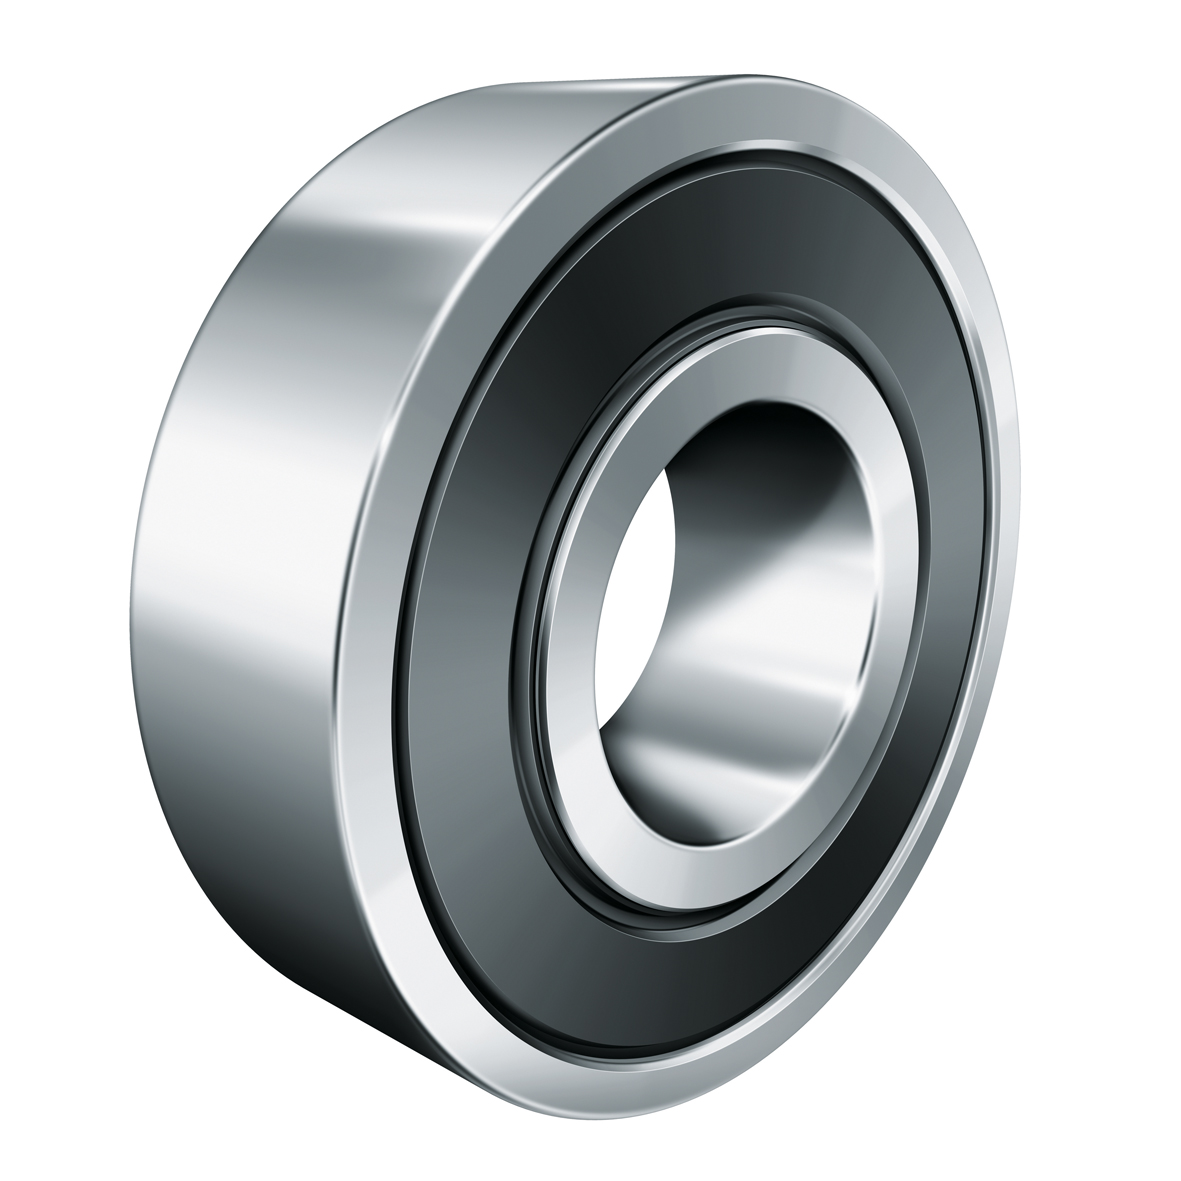 Yakang Bearing Supplies